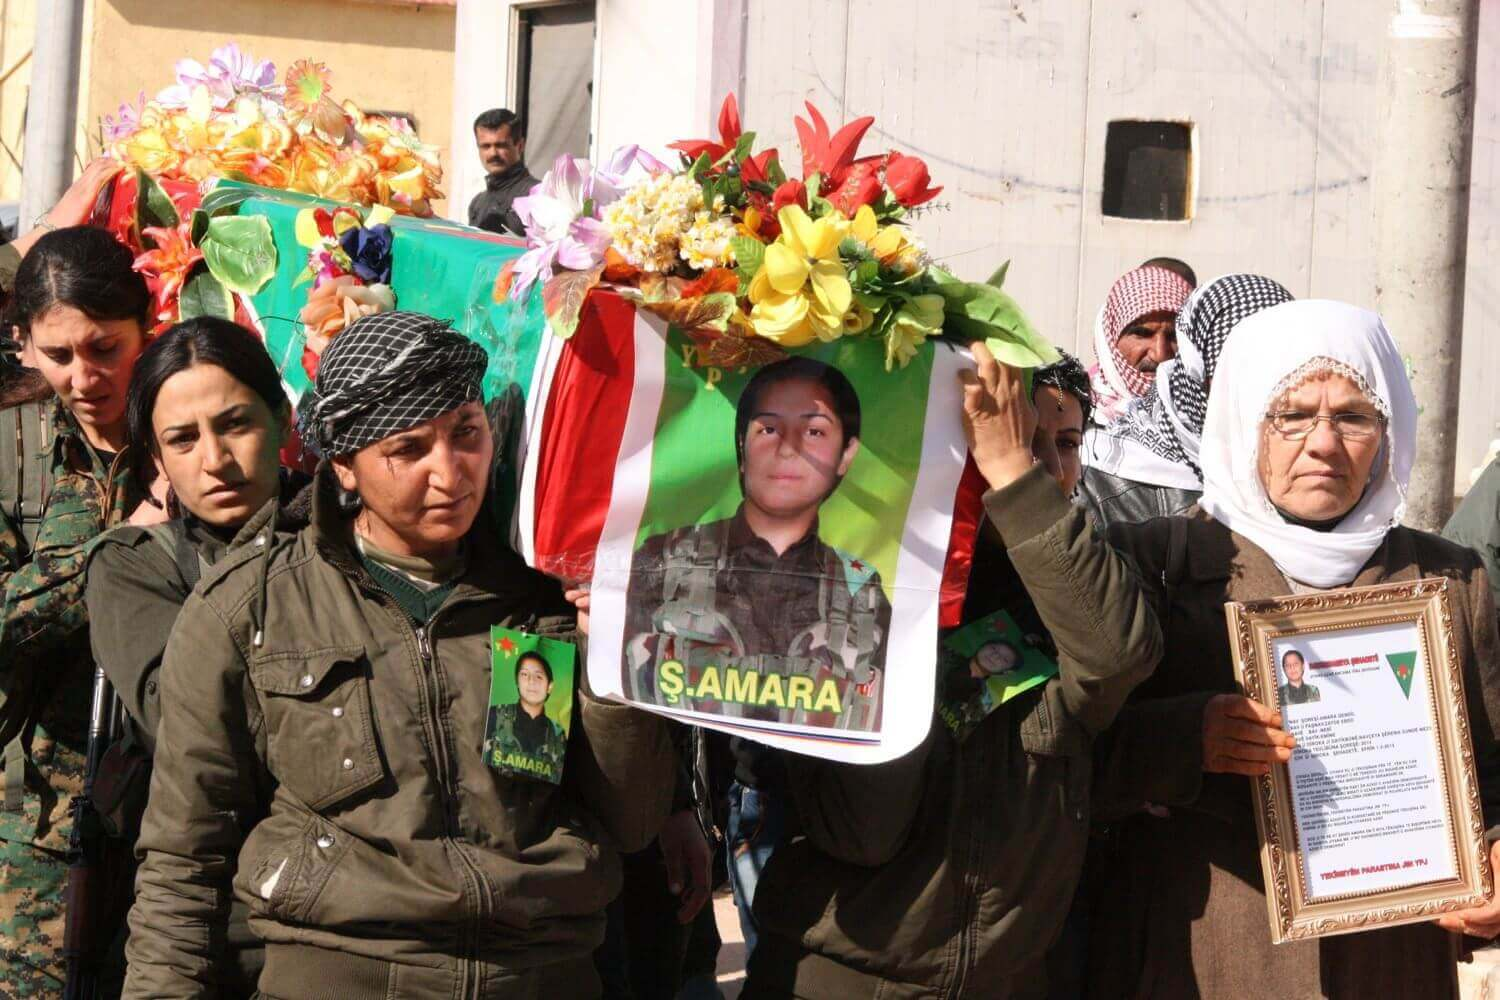 Funeral of a young YPJ fighter who was killed in Kobanê Efrîn, February 3, 2015